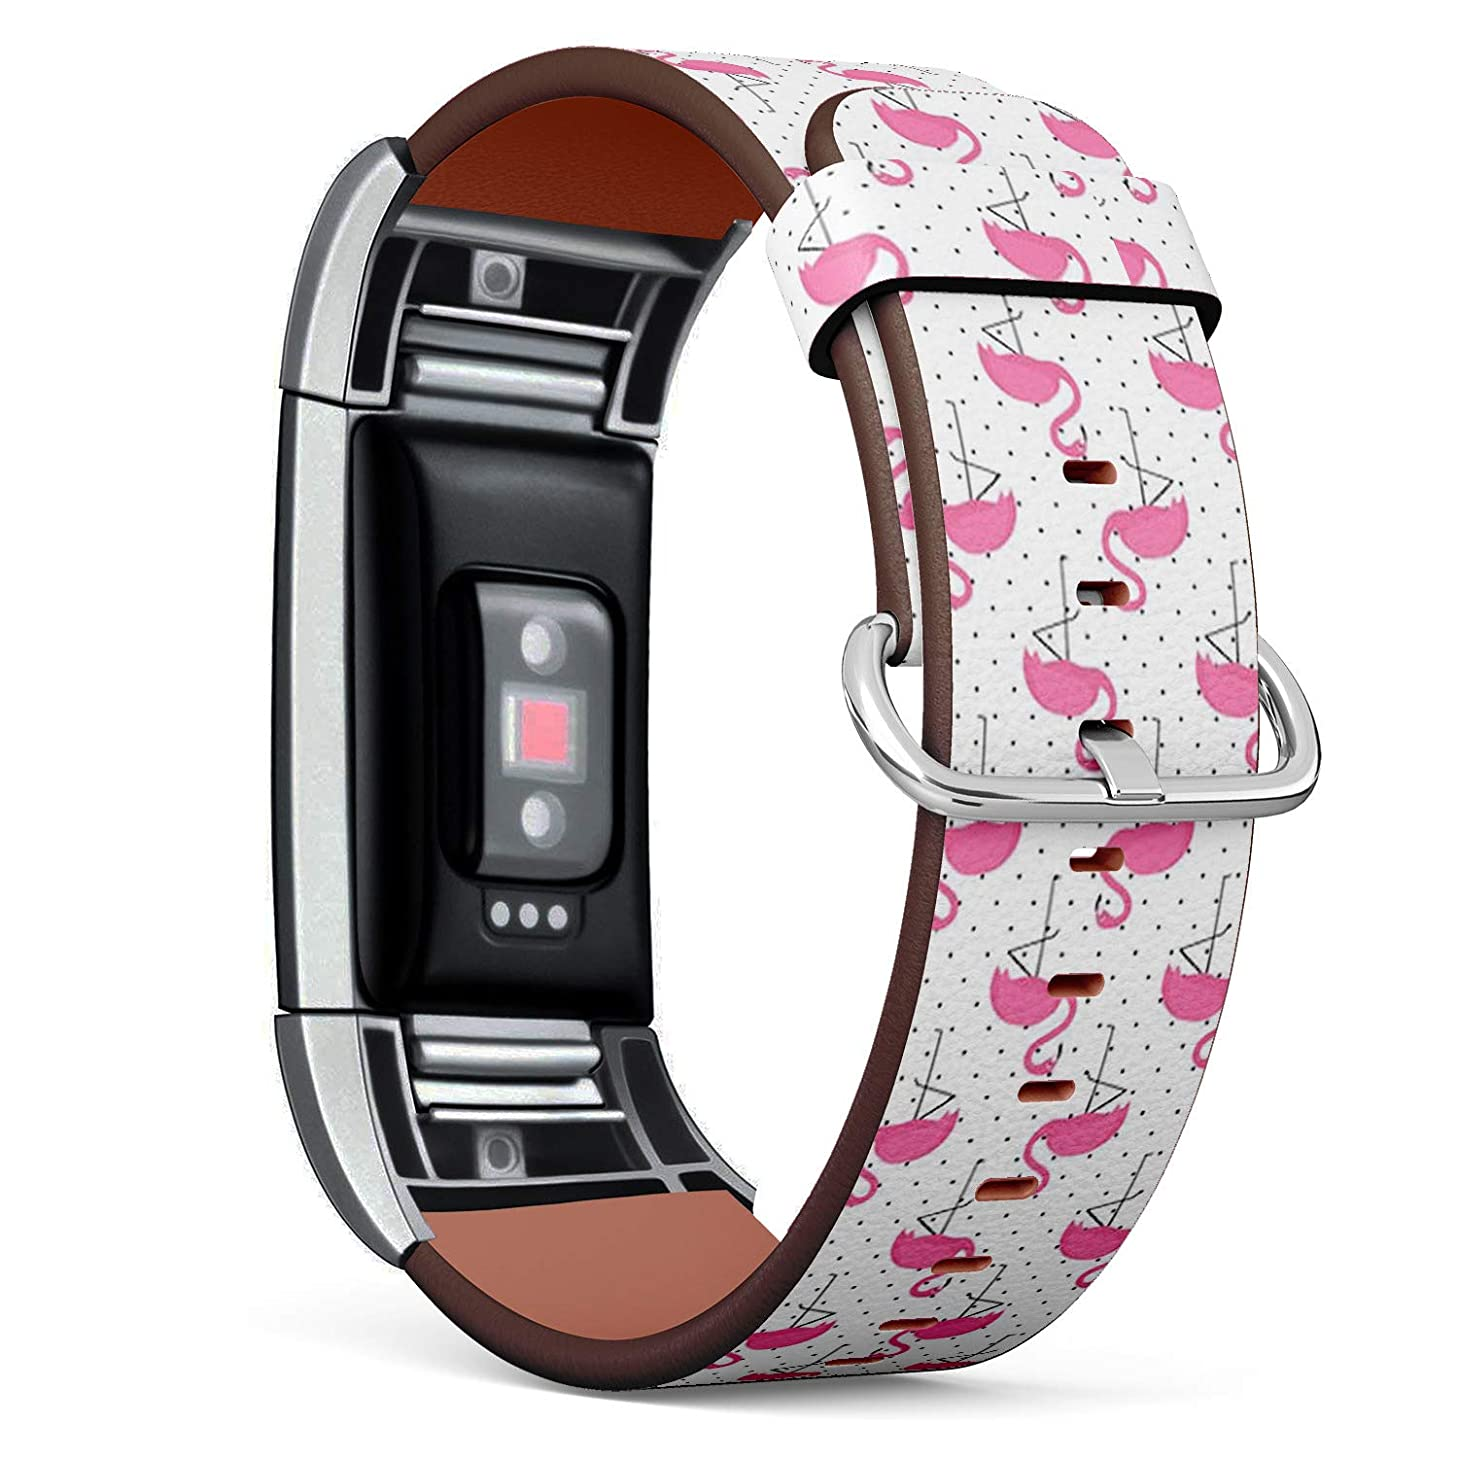 Compatible with Fitbit Charge 2 - Leather Wristband Bracelet Replacement Accessory Band (Includes Adapters) - Flamingo On Polka